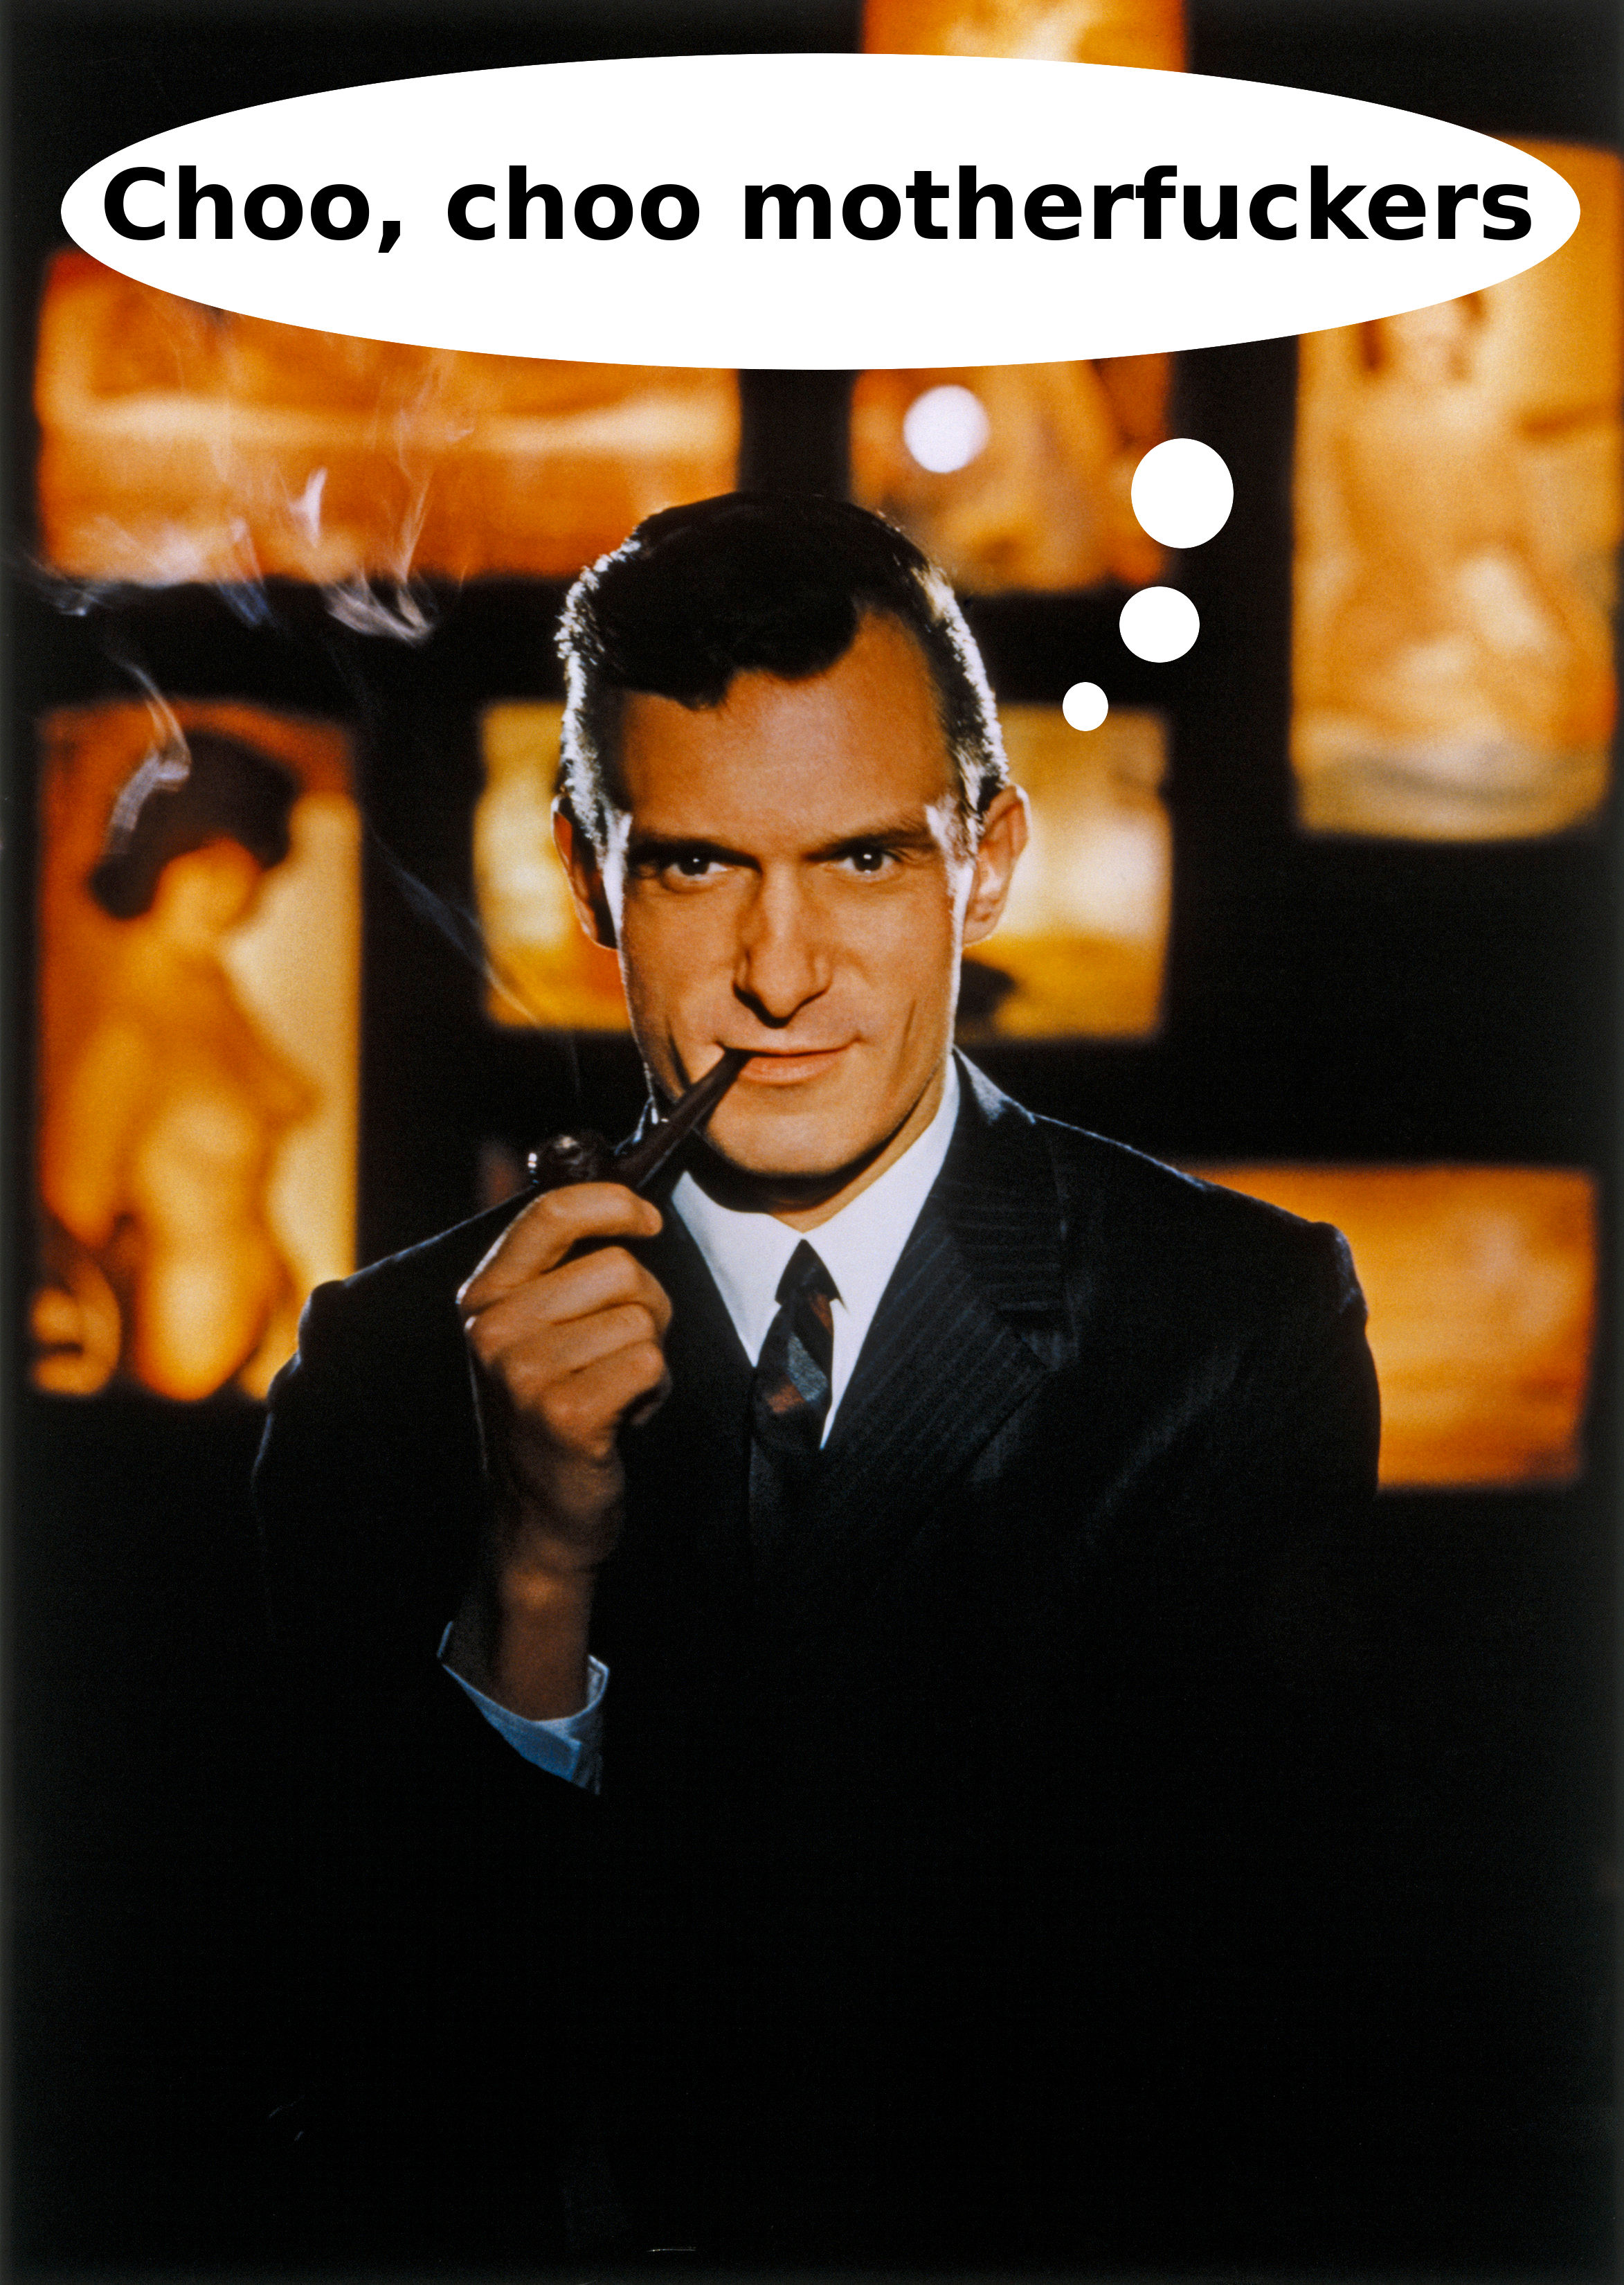 Image of Hugh Hefner in a suit smoking a pipe, maybe in his thirties